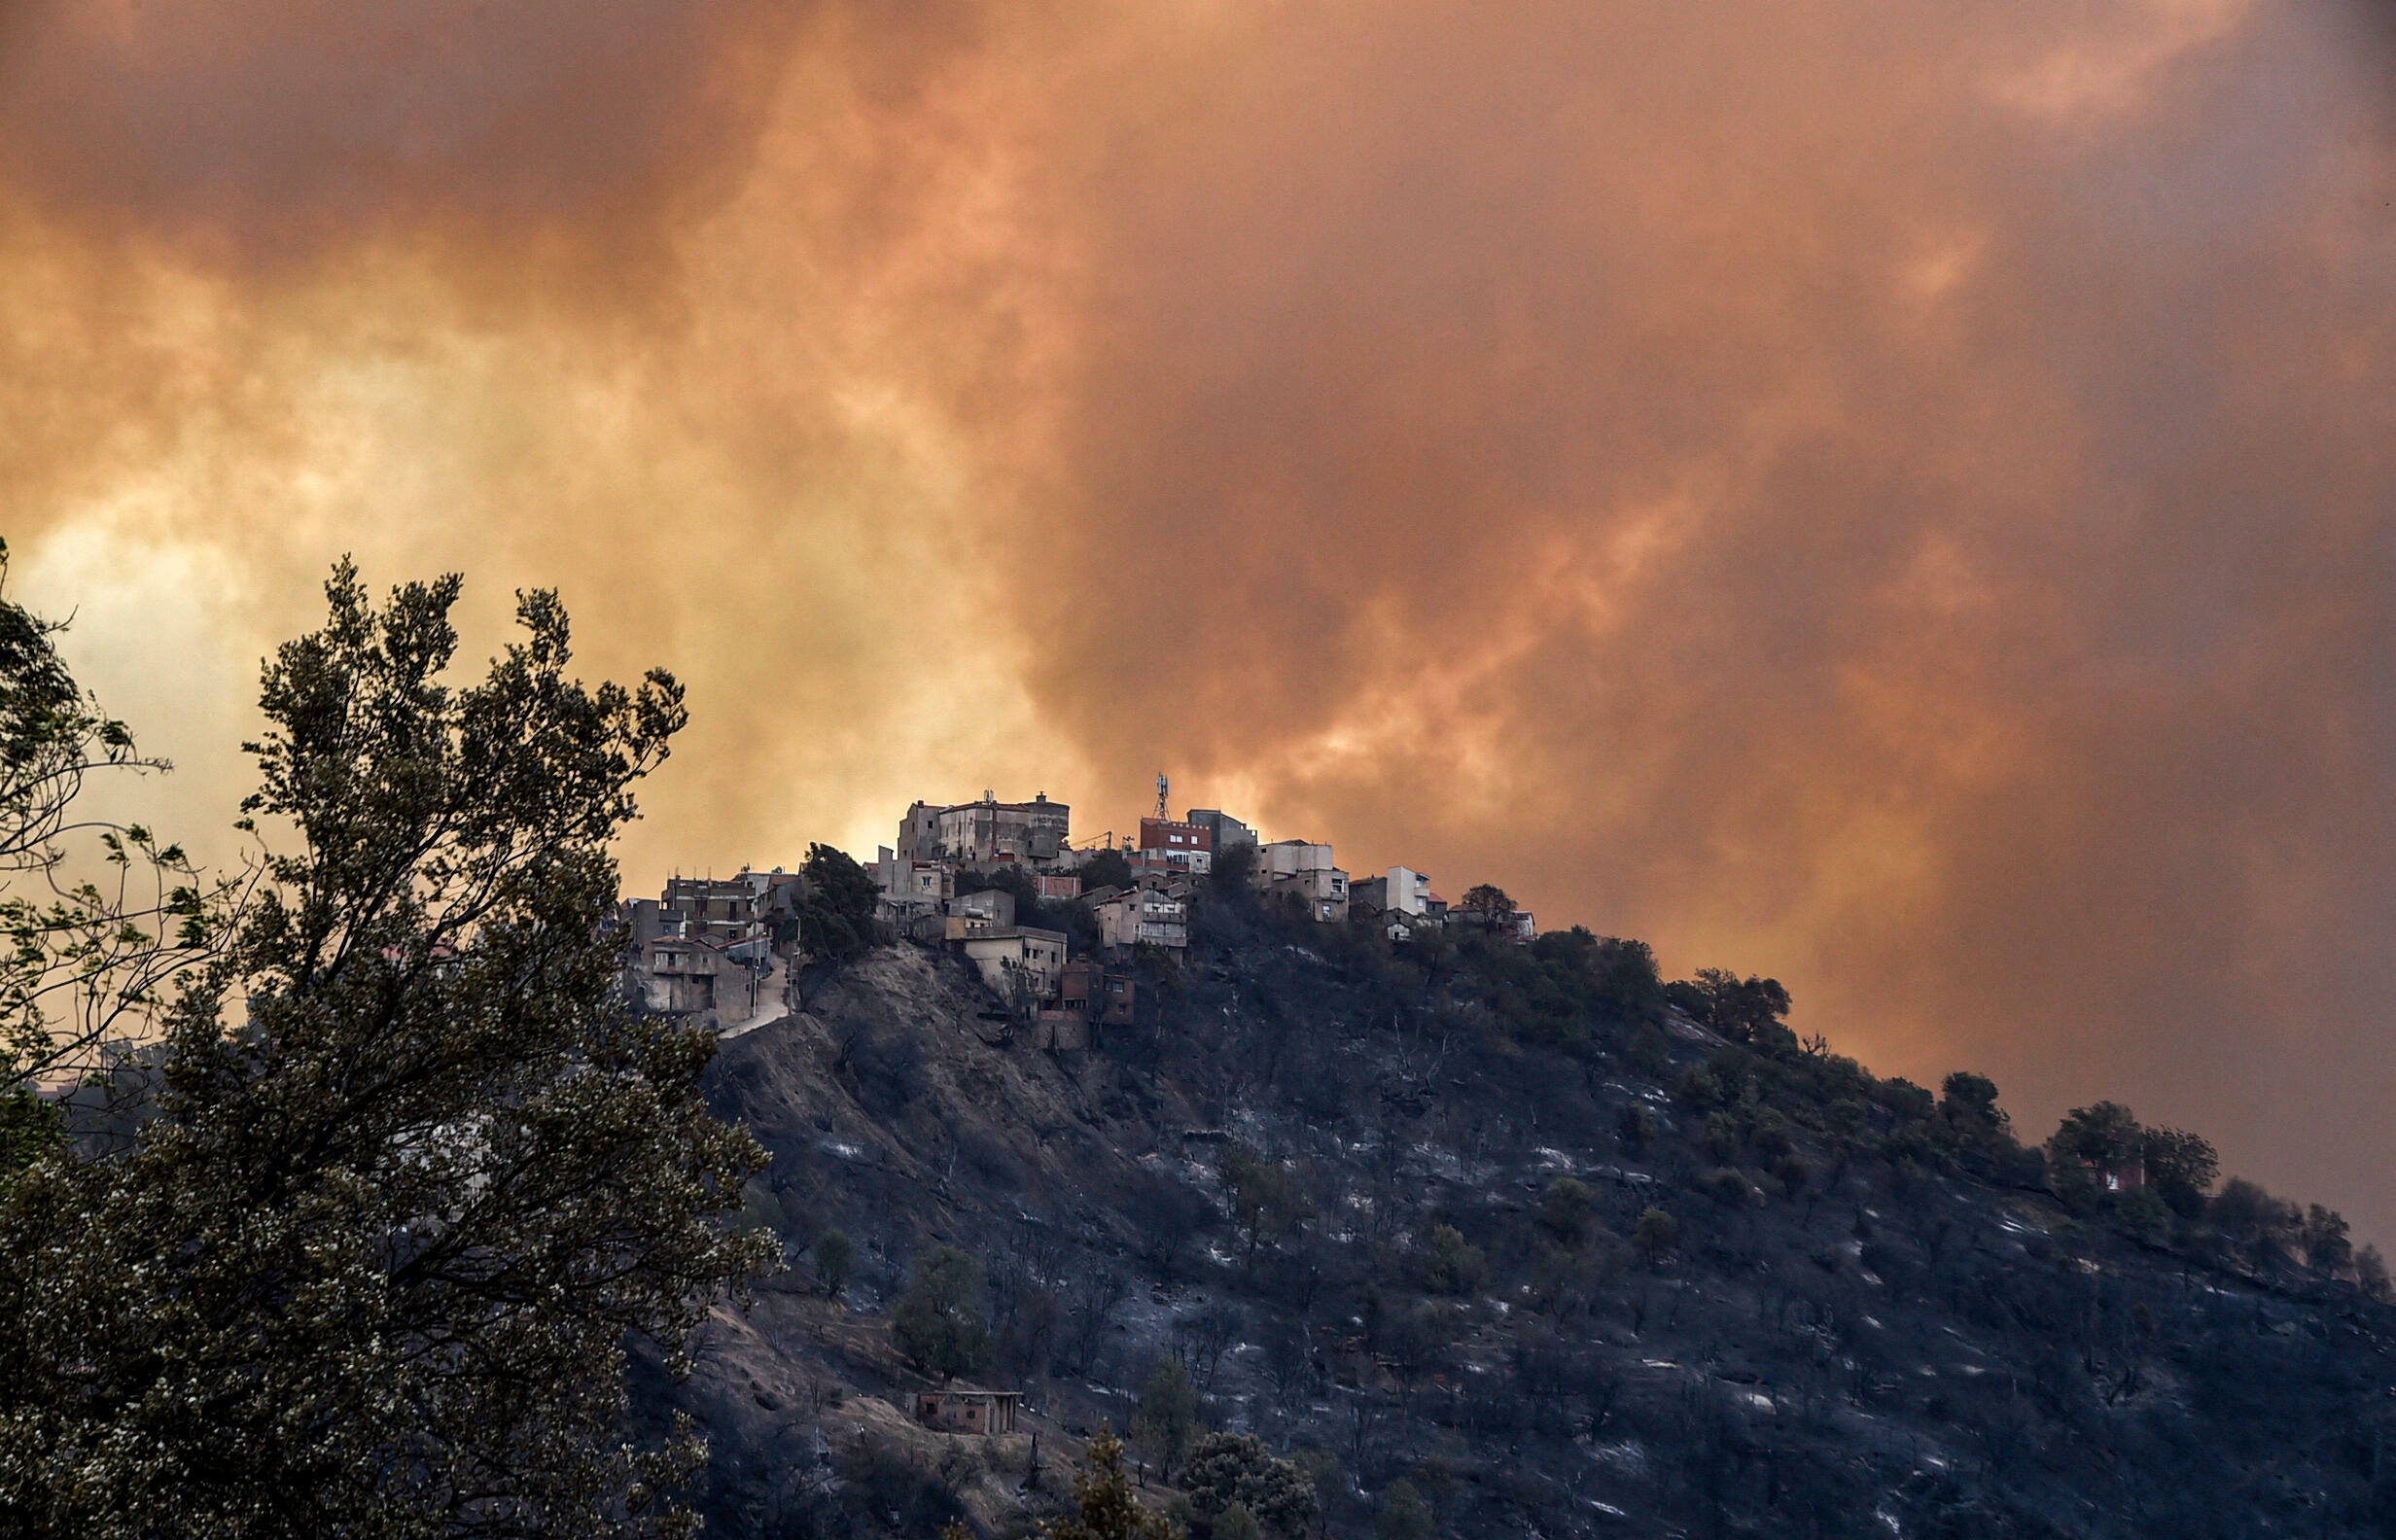 More than 40 killed in Algeria wildfires, prime minister says